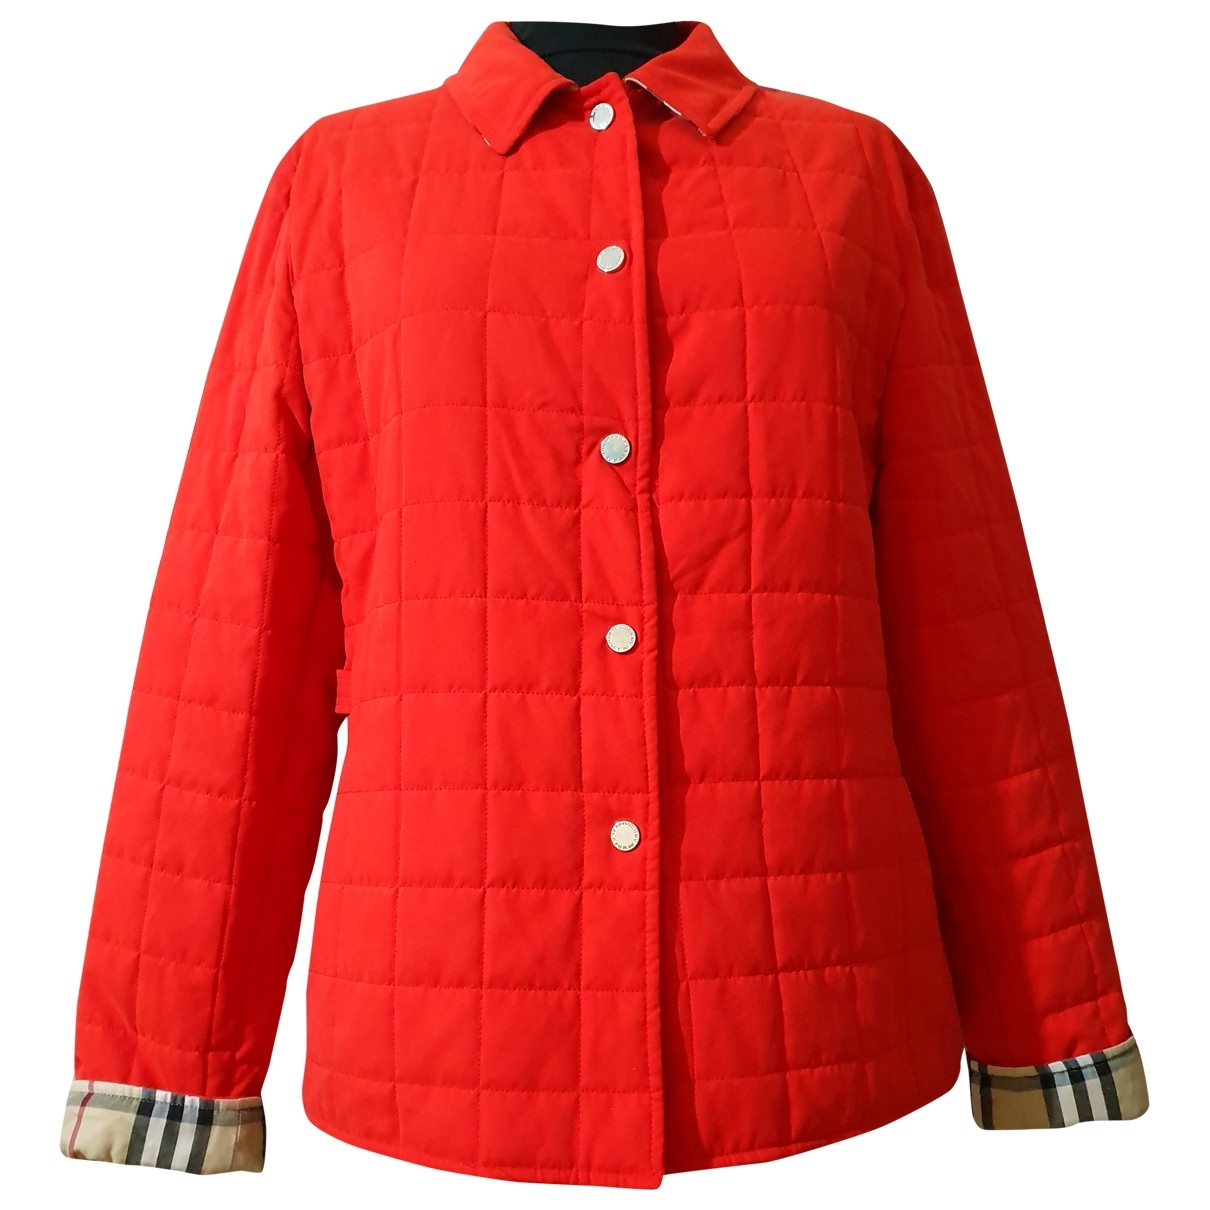 Burberry \N Red jacket for Women 44 IT